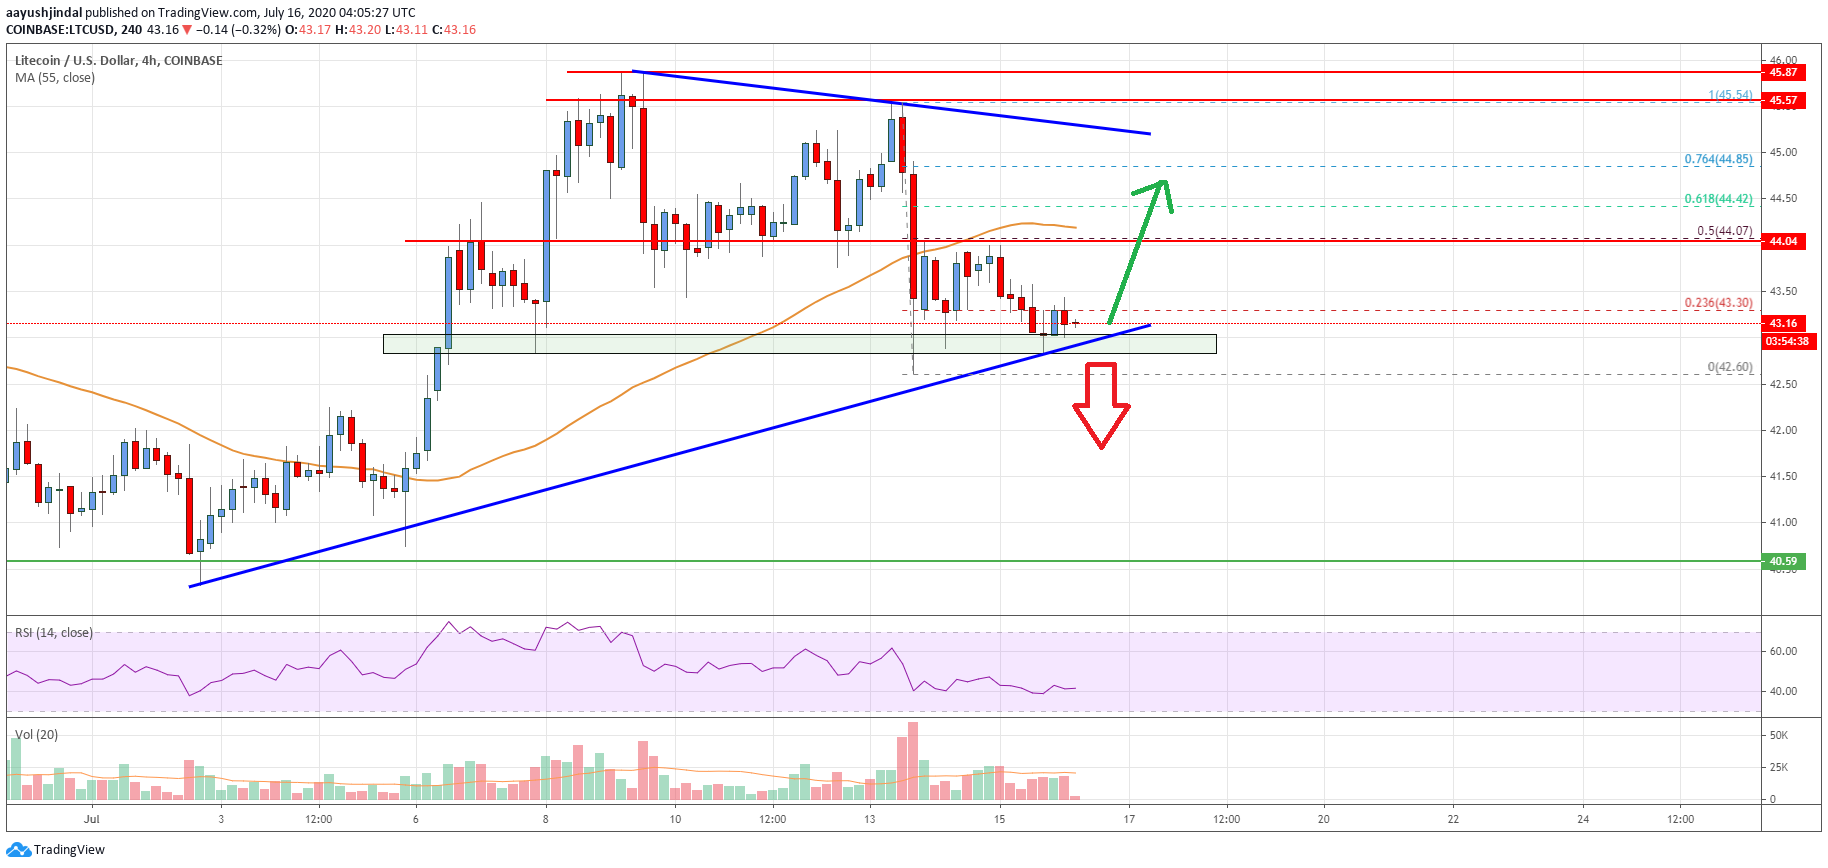 Litecoin (LTC) Price Analysis: Bulls Facing An Uphill Task At $42.50